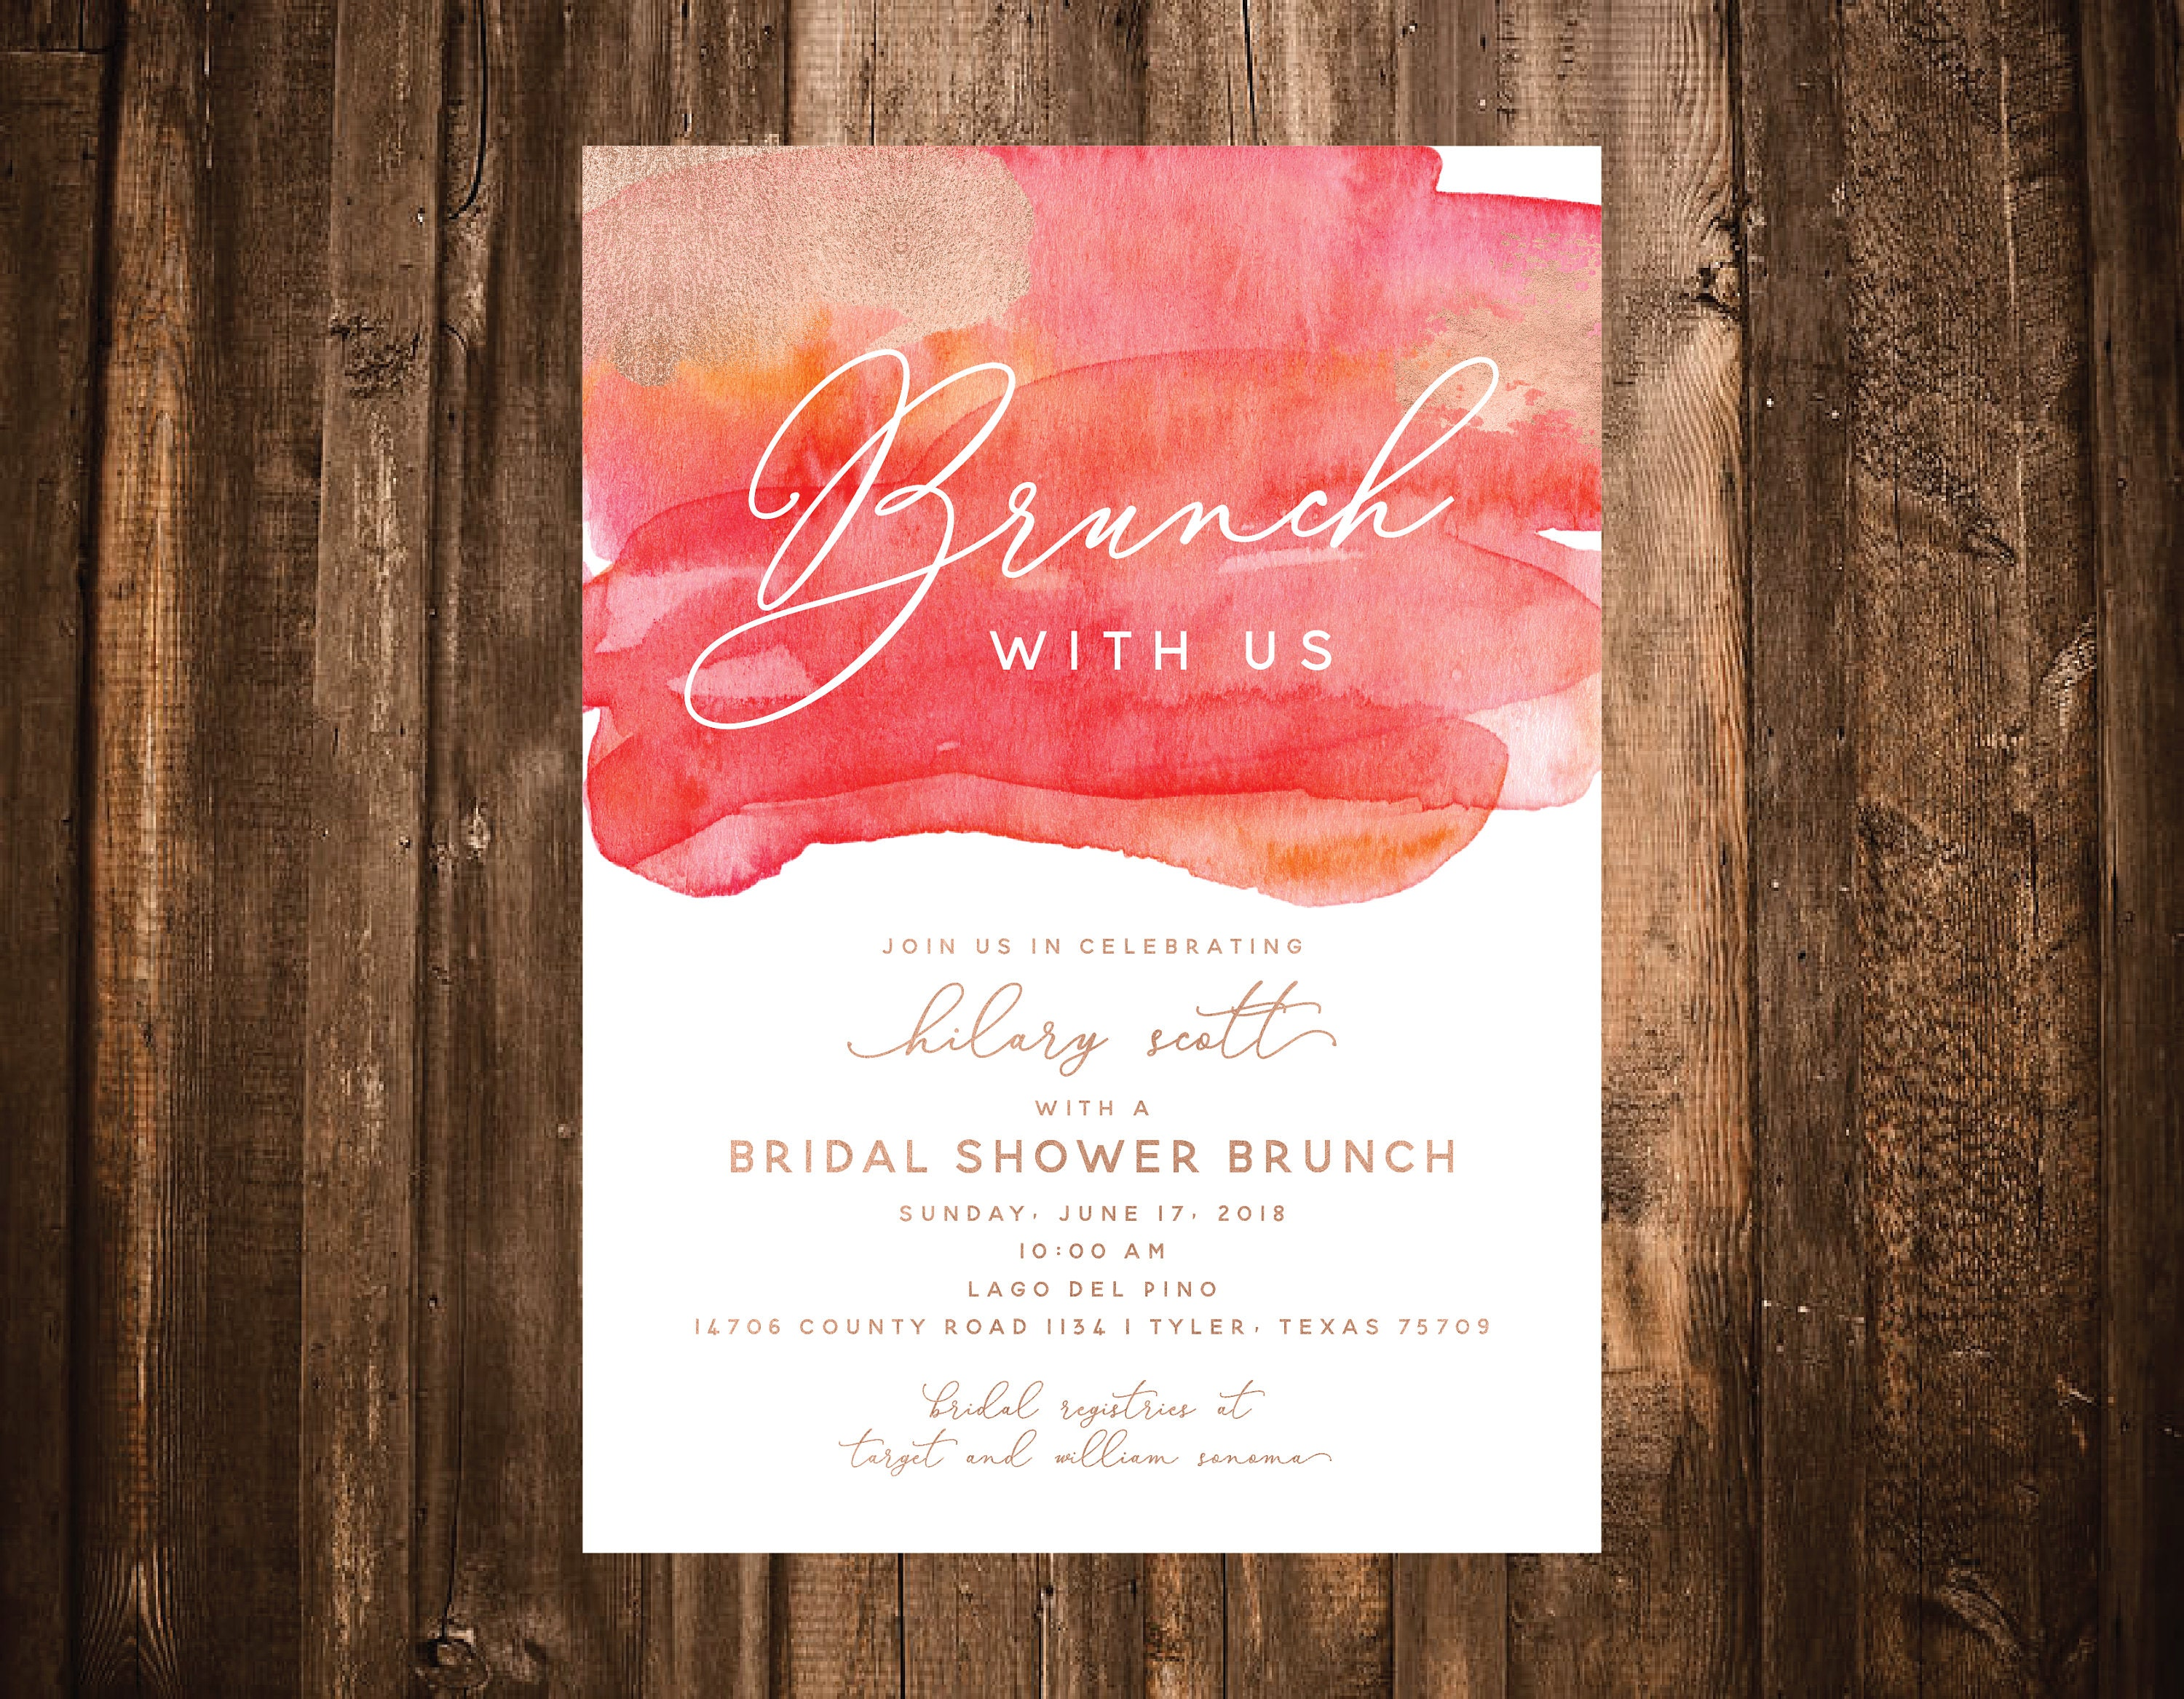 Bridal Shower InvitationsBridal Brunch Invitations | Etsy